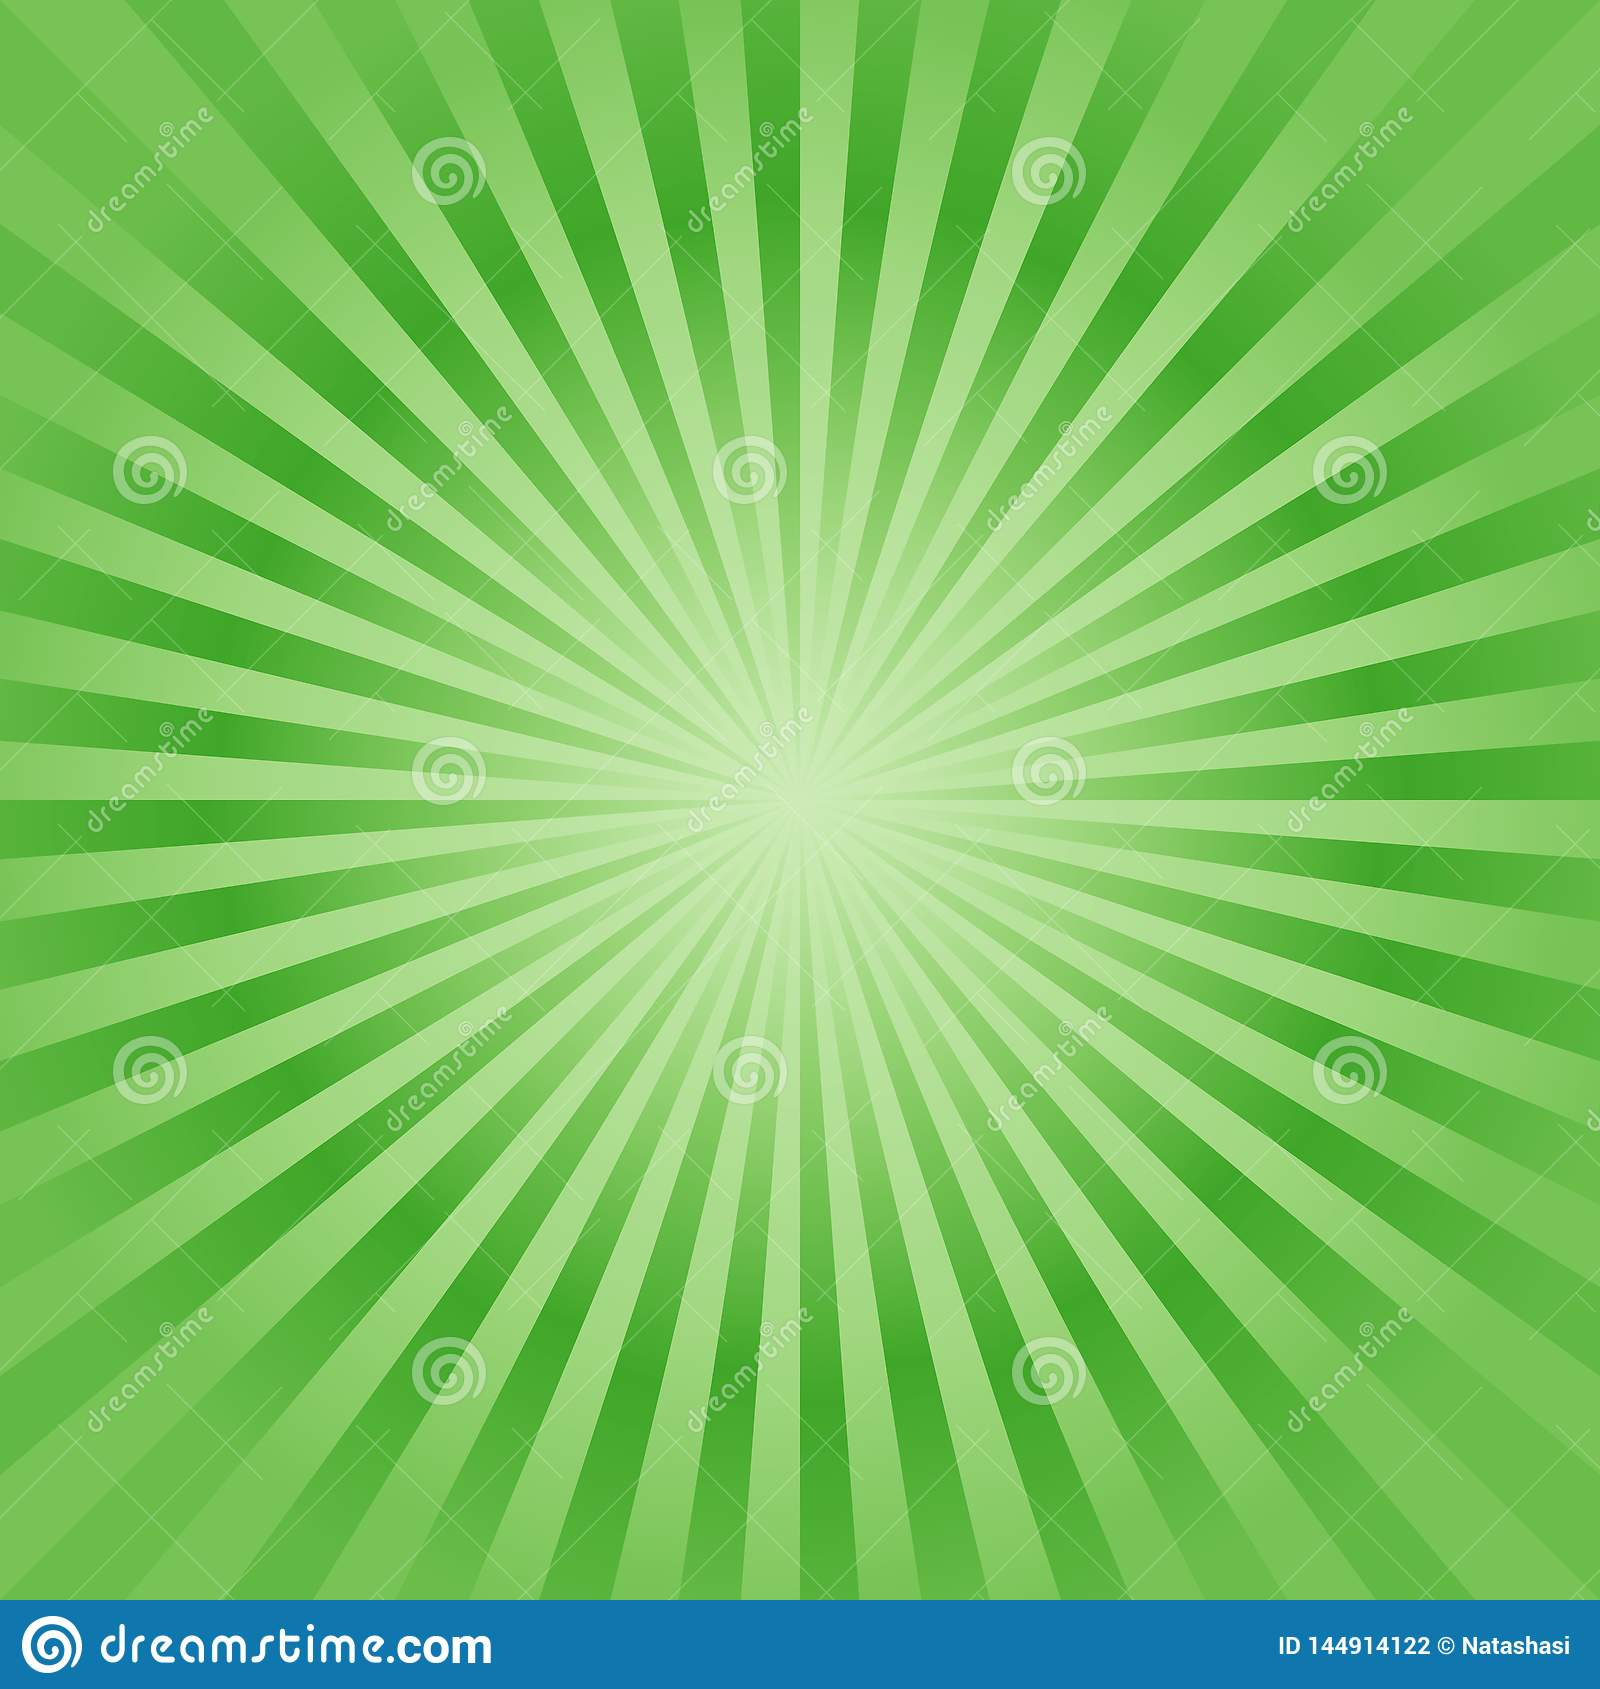 Abstract background. Soft Bright Green rays background. Vector